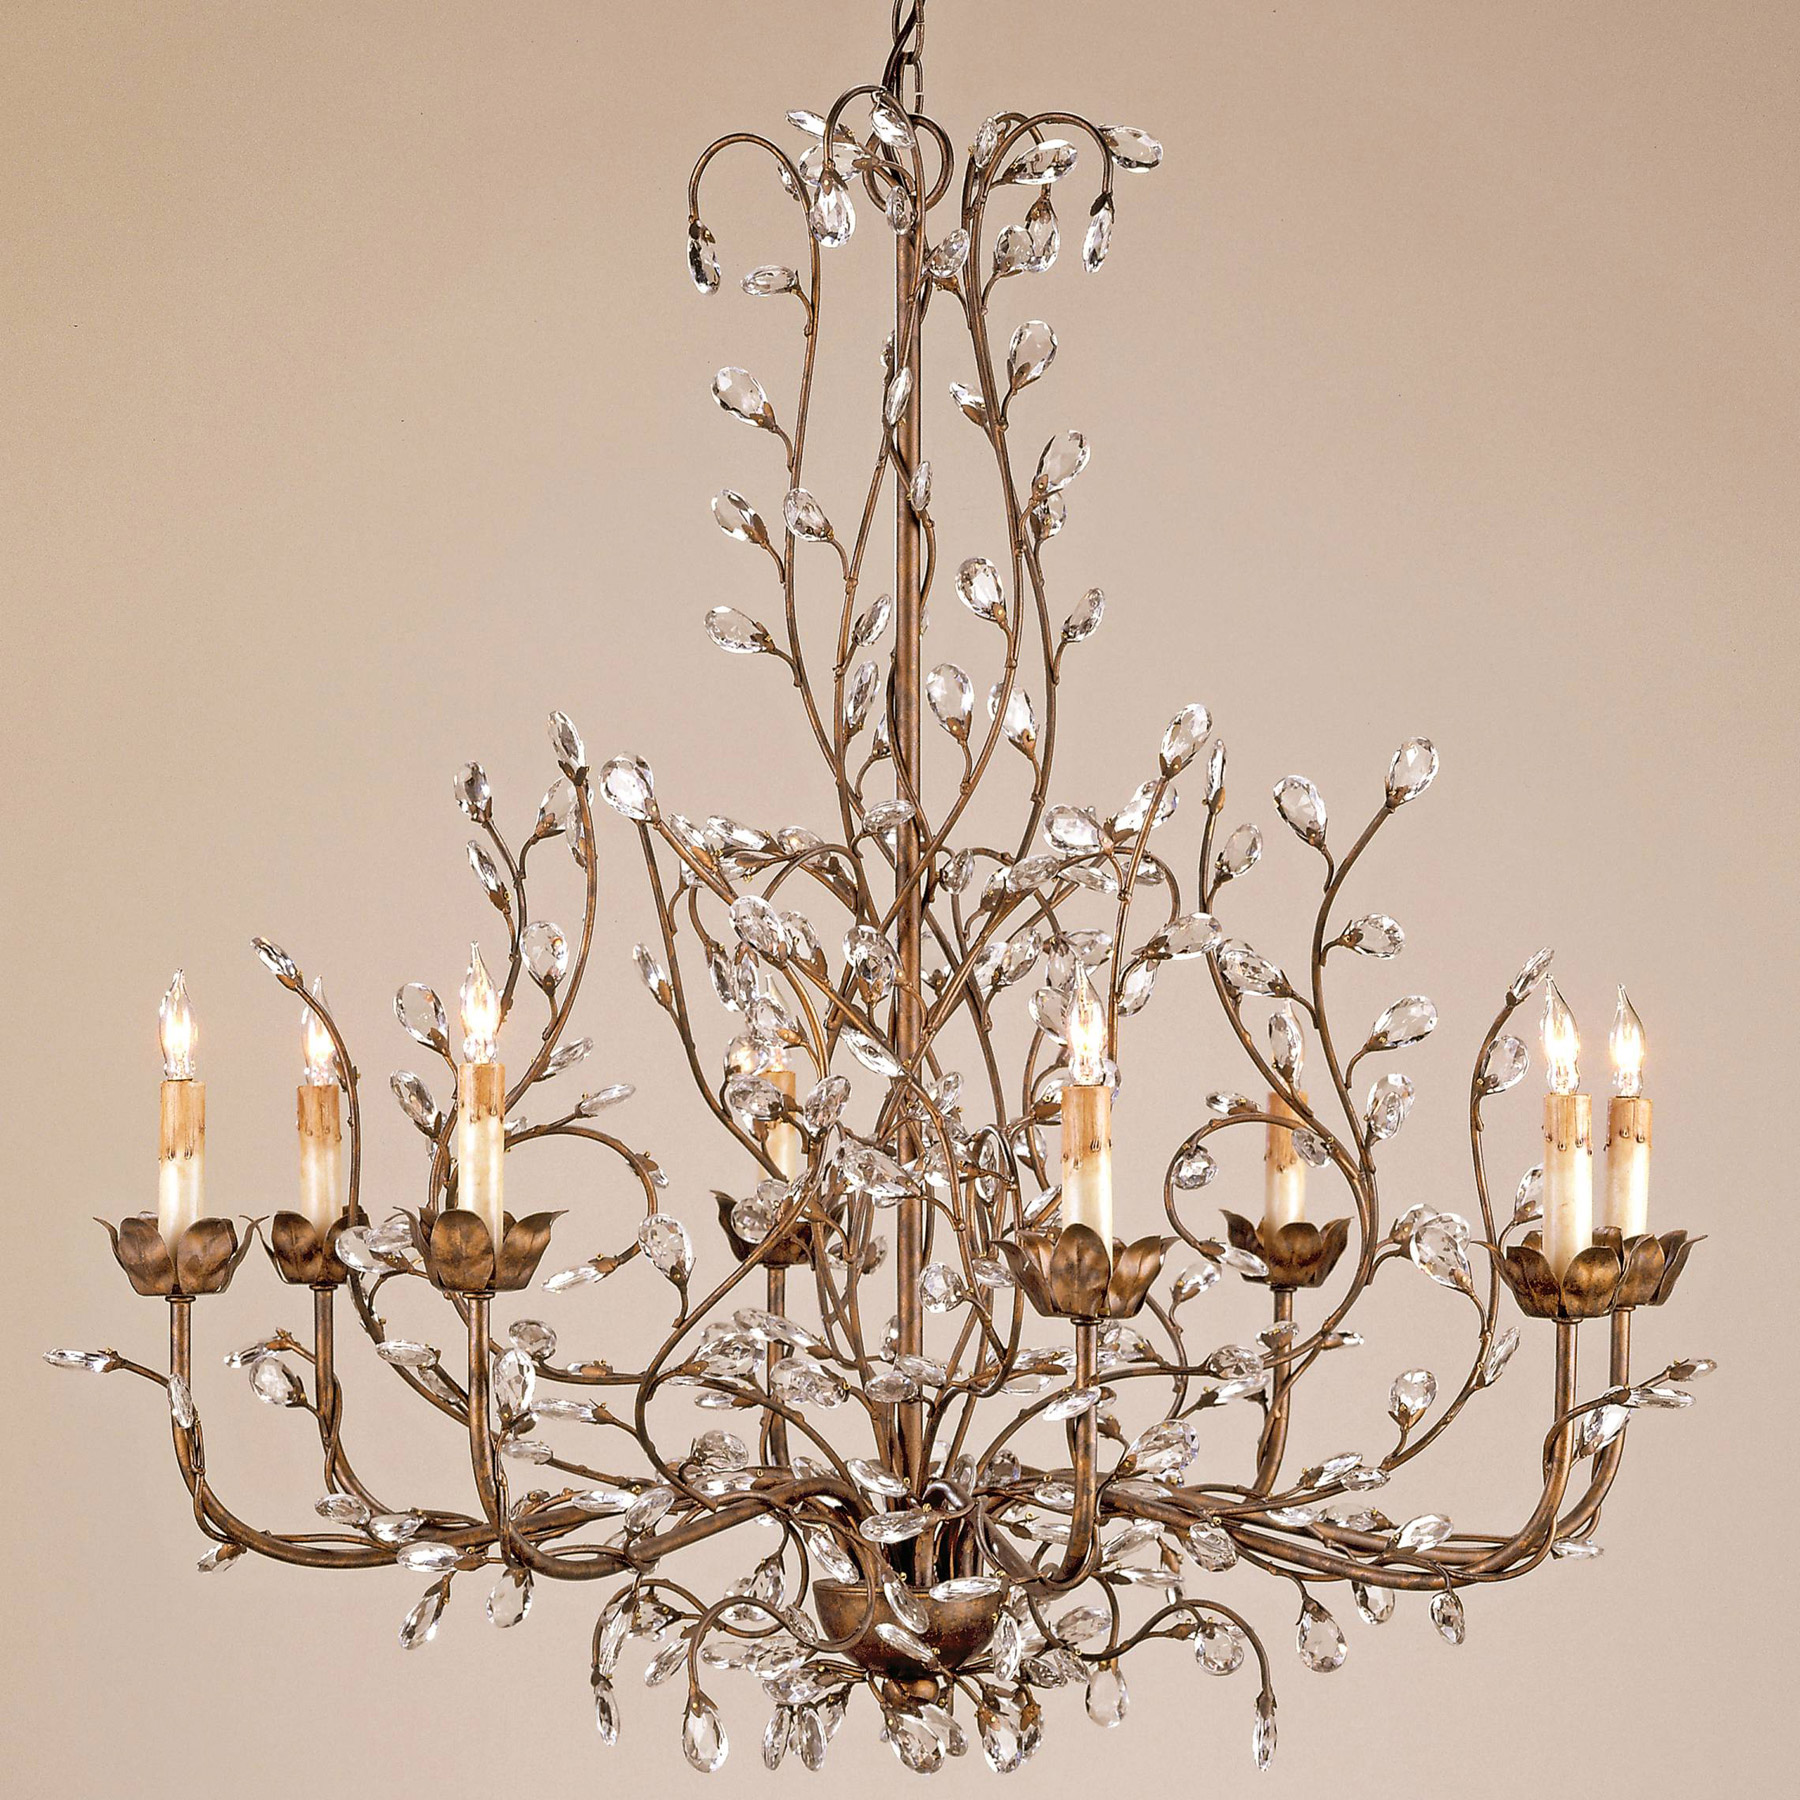 and Company 9884 Crystal Crystal Bud Eight Light Chandelier – Currey and Company Lighting Chandeliers